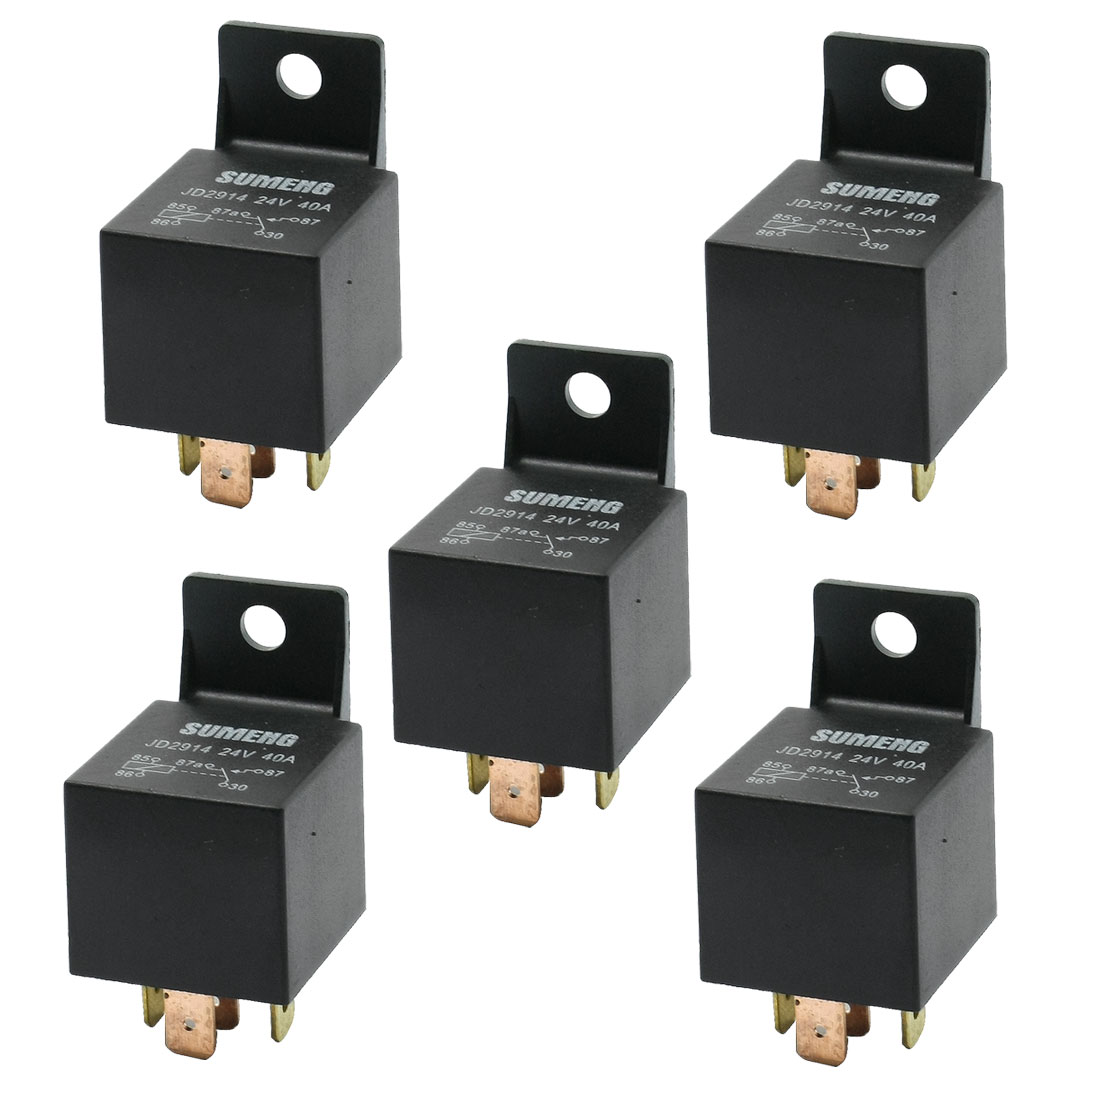 DC 24V 40A 1NO 1NC SPDT 5 Pins Male Plug Automotive Truck Car Relay 5 Pcs